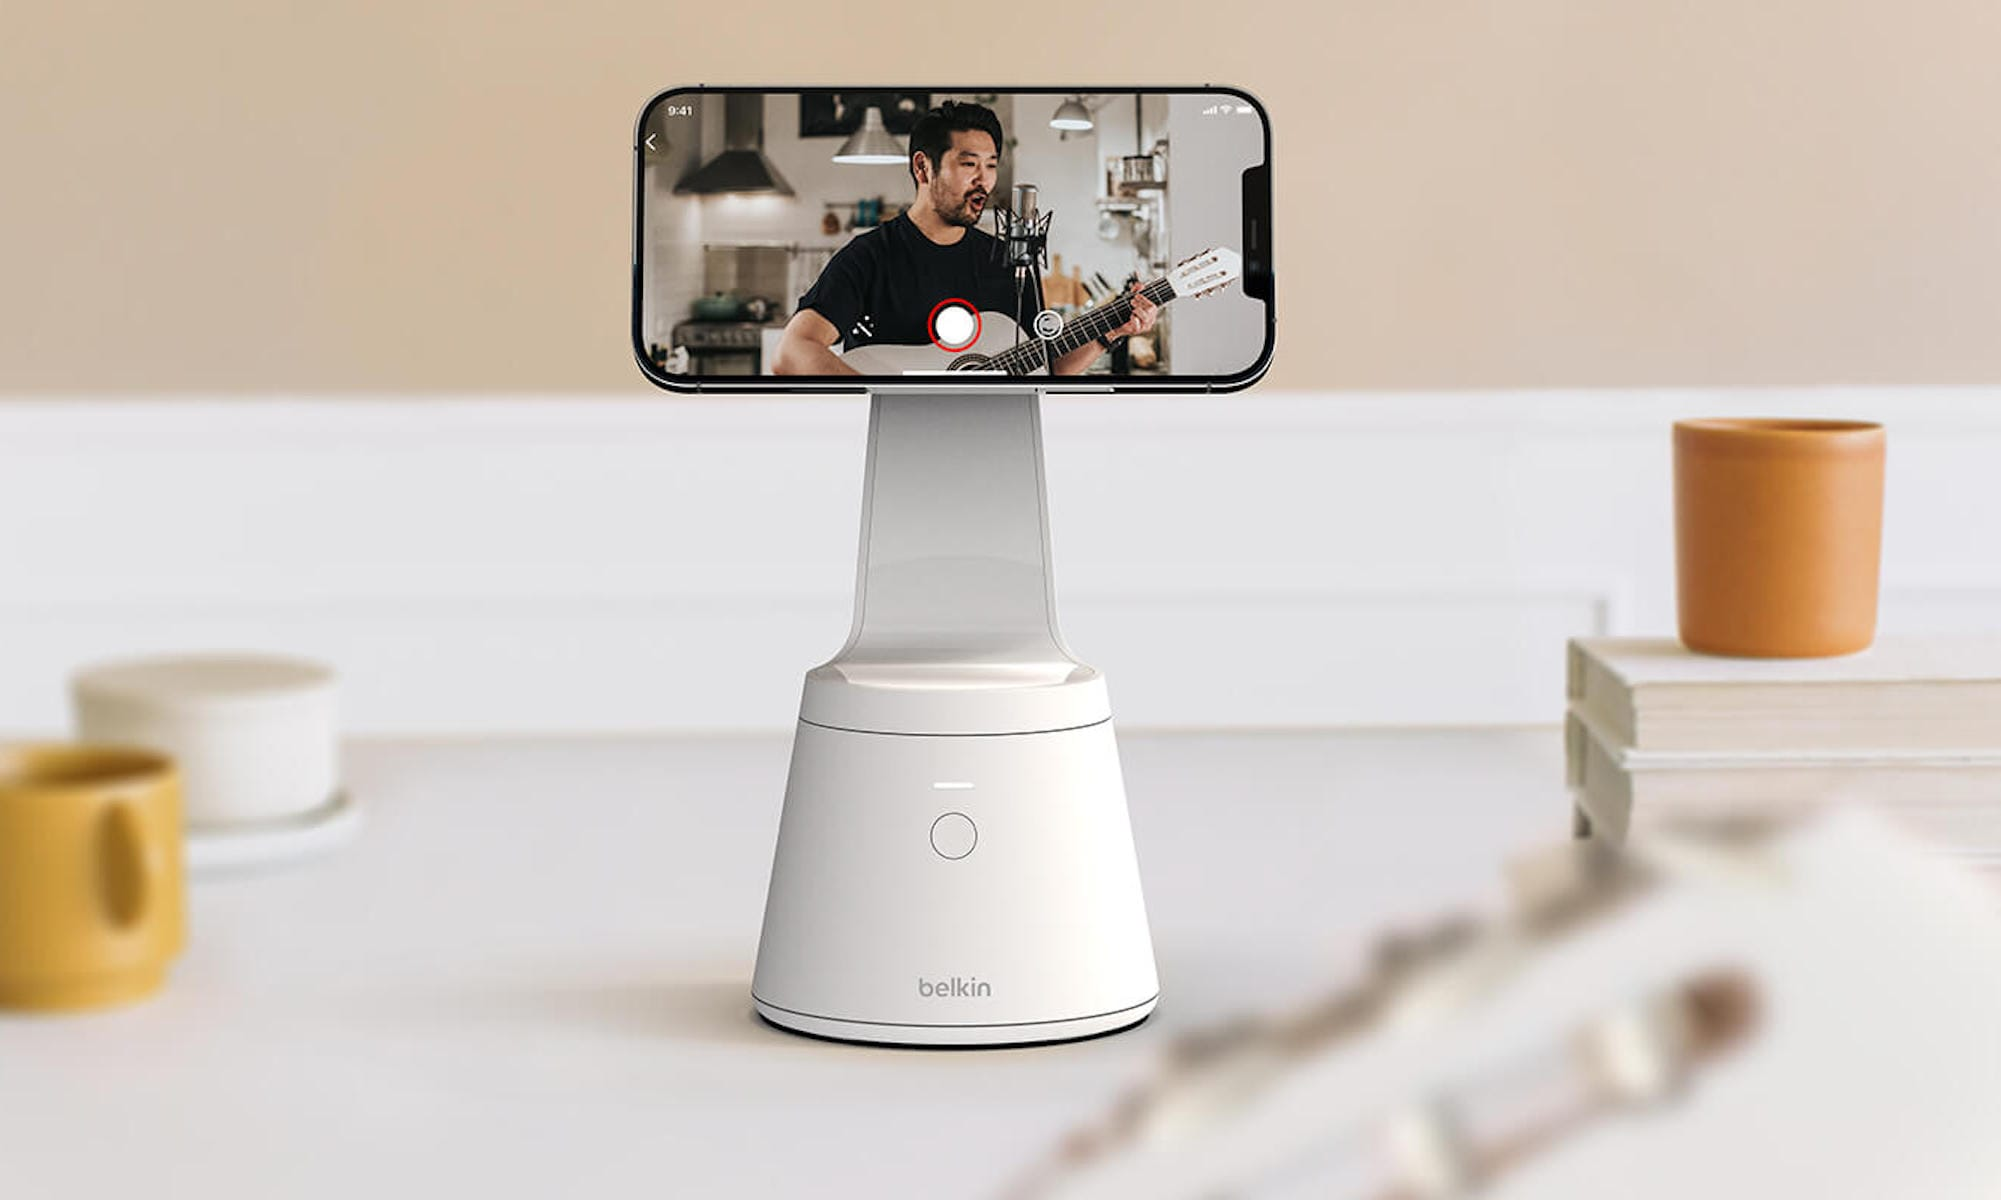 This-Belkin-iPhone-12-stand-will-follow-you-during-recordings-with-face-tracking-featured.jpeg